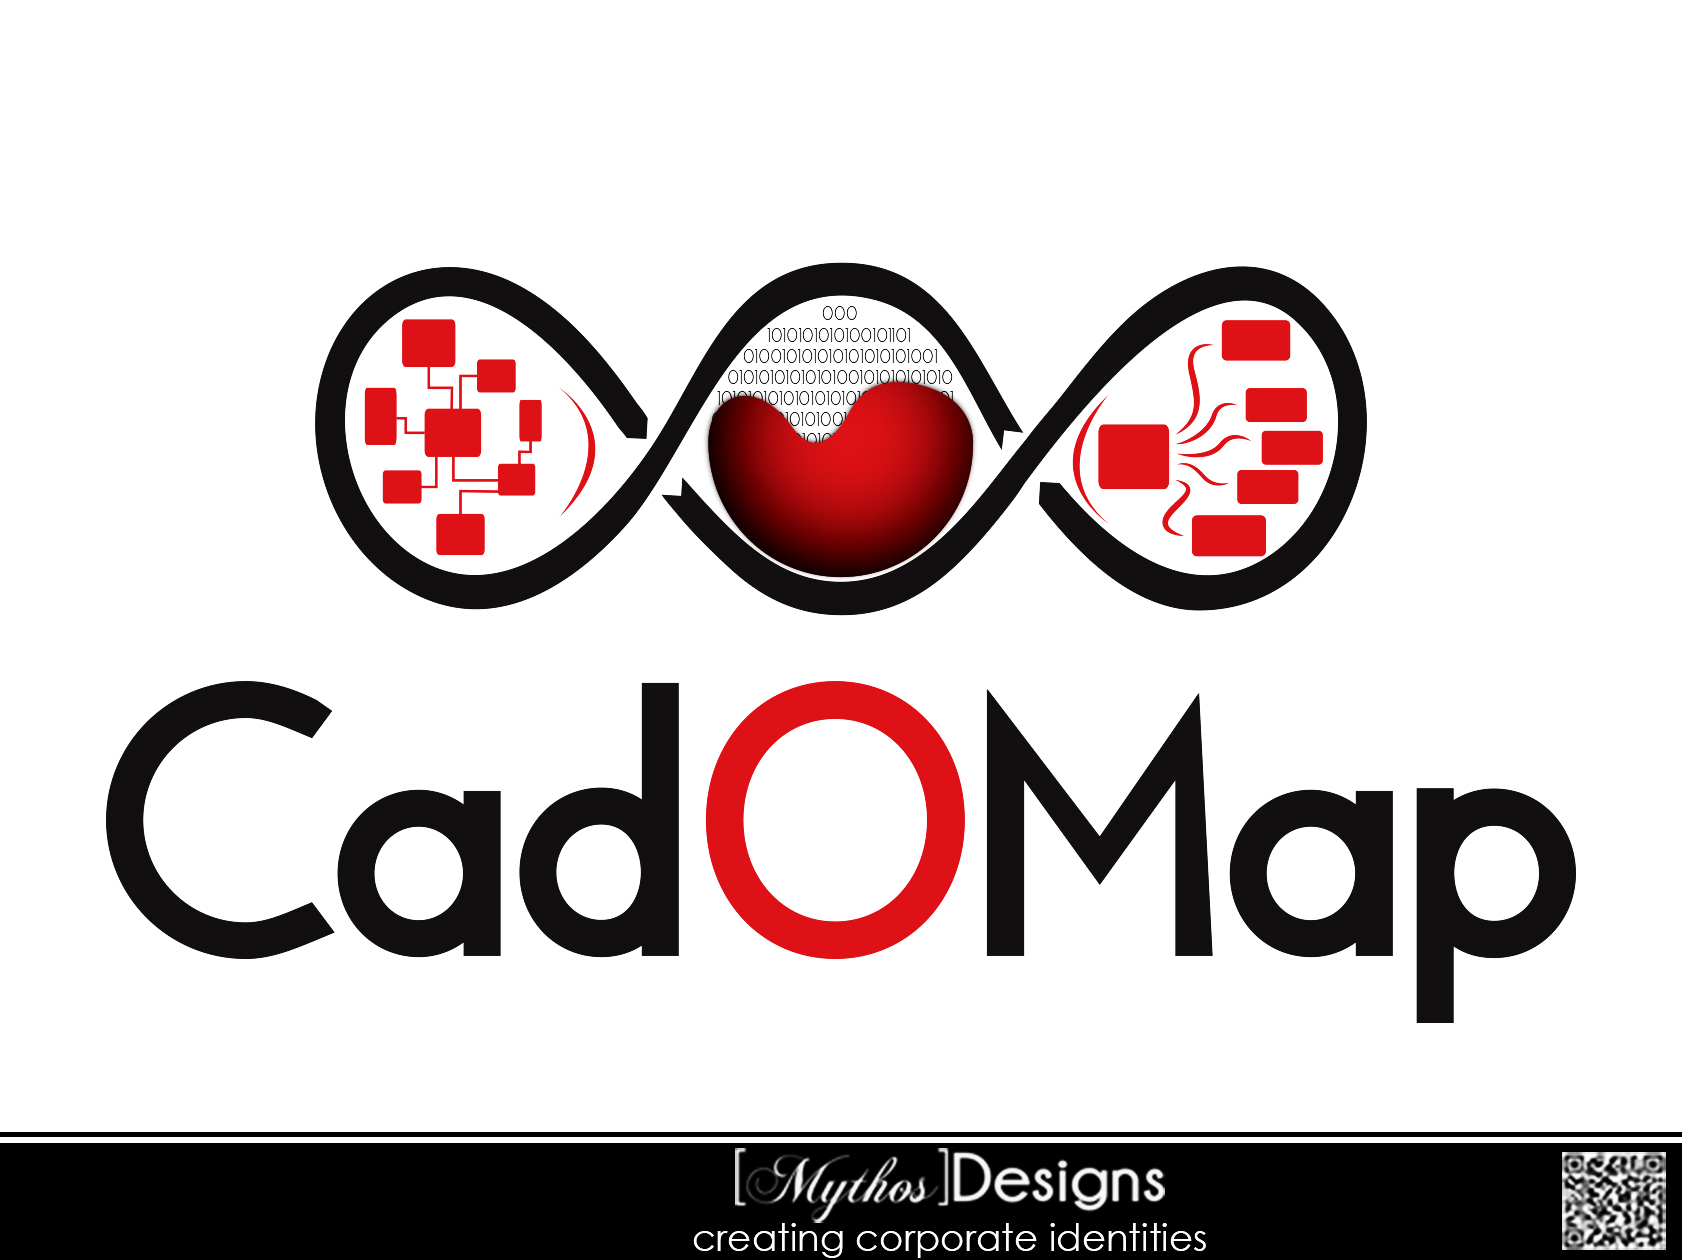 Logo Design by Mythos Designs - Entry No. 100 in the Logo Design Contest Captivating Logo Design for CadOMap software product.